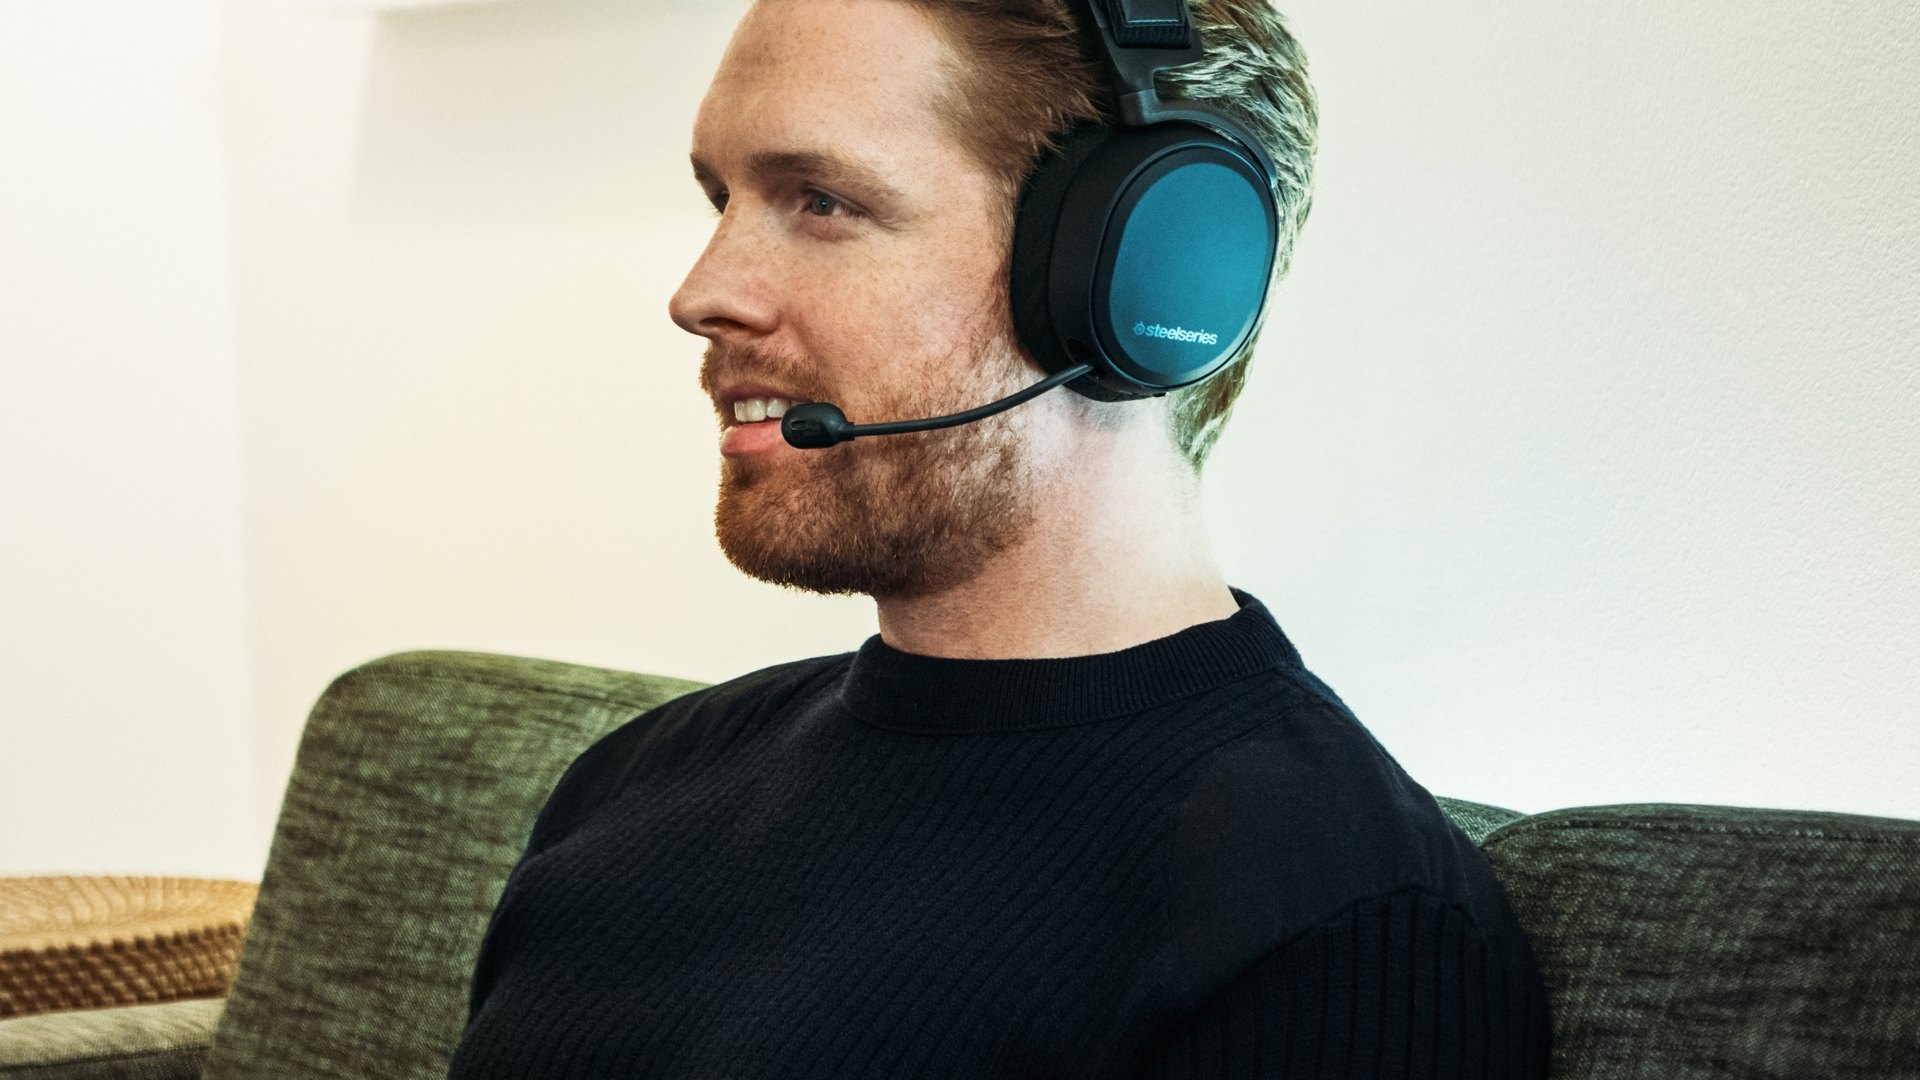 A gamer smiling while using the headset and playing a game